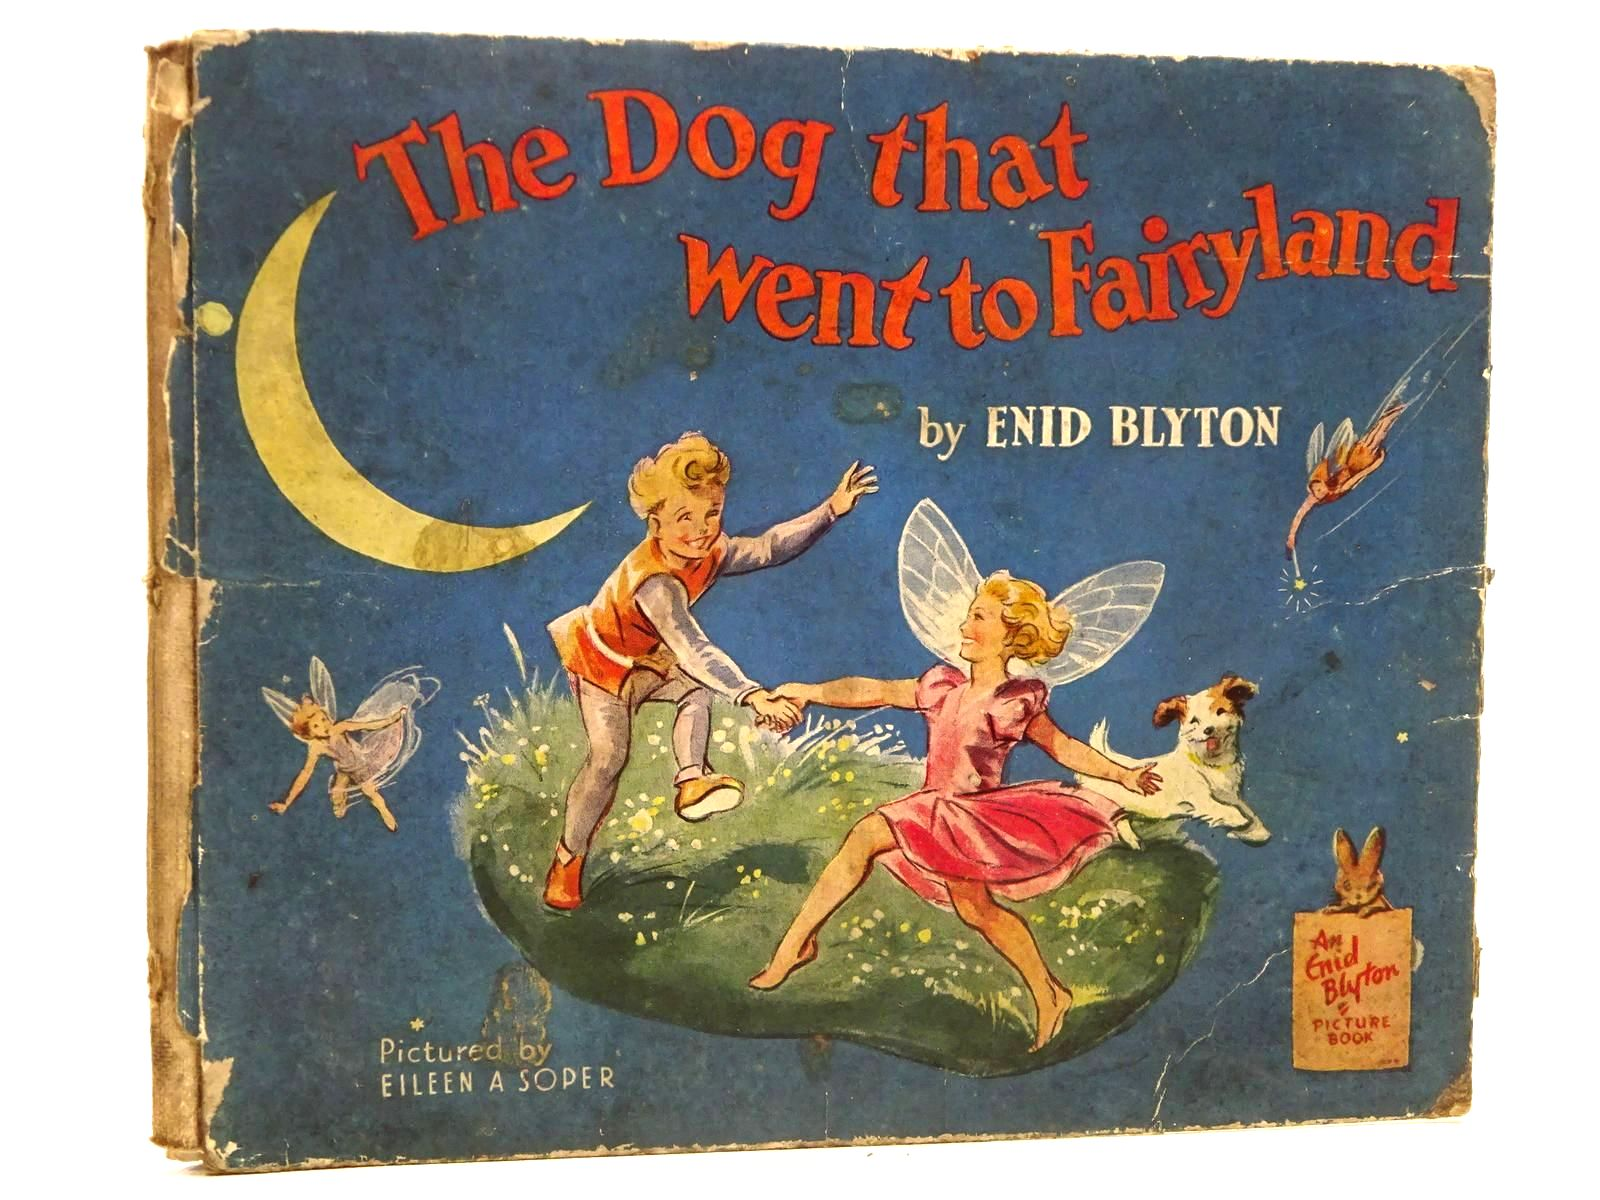 Photo of THE DOG THAT WENT TO FAIRYLAND written by Blyton, Enid illustrated by Soper, Eileen published by The Brockhampton Book Co. Ltd. (STOCK CODE: 2129167)  for sale by Stella & Rose's Books